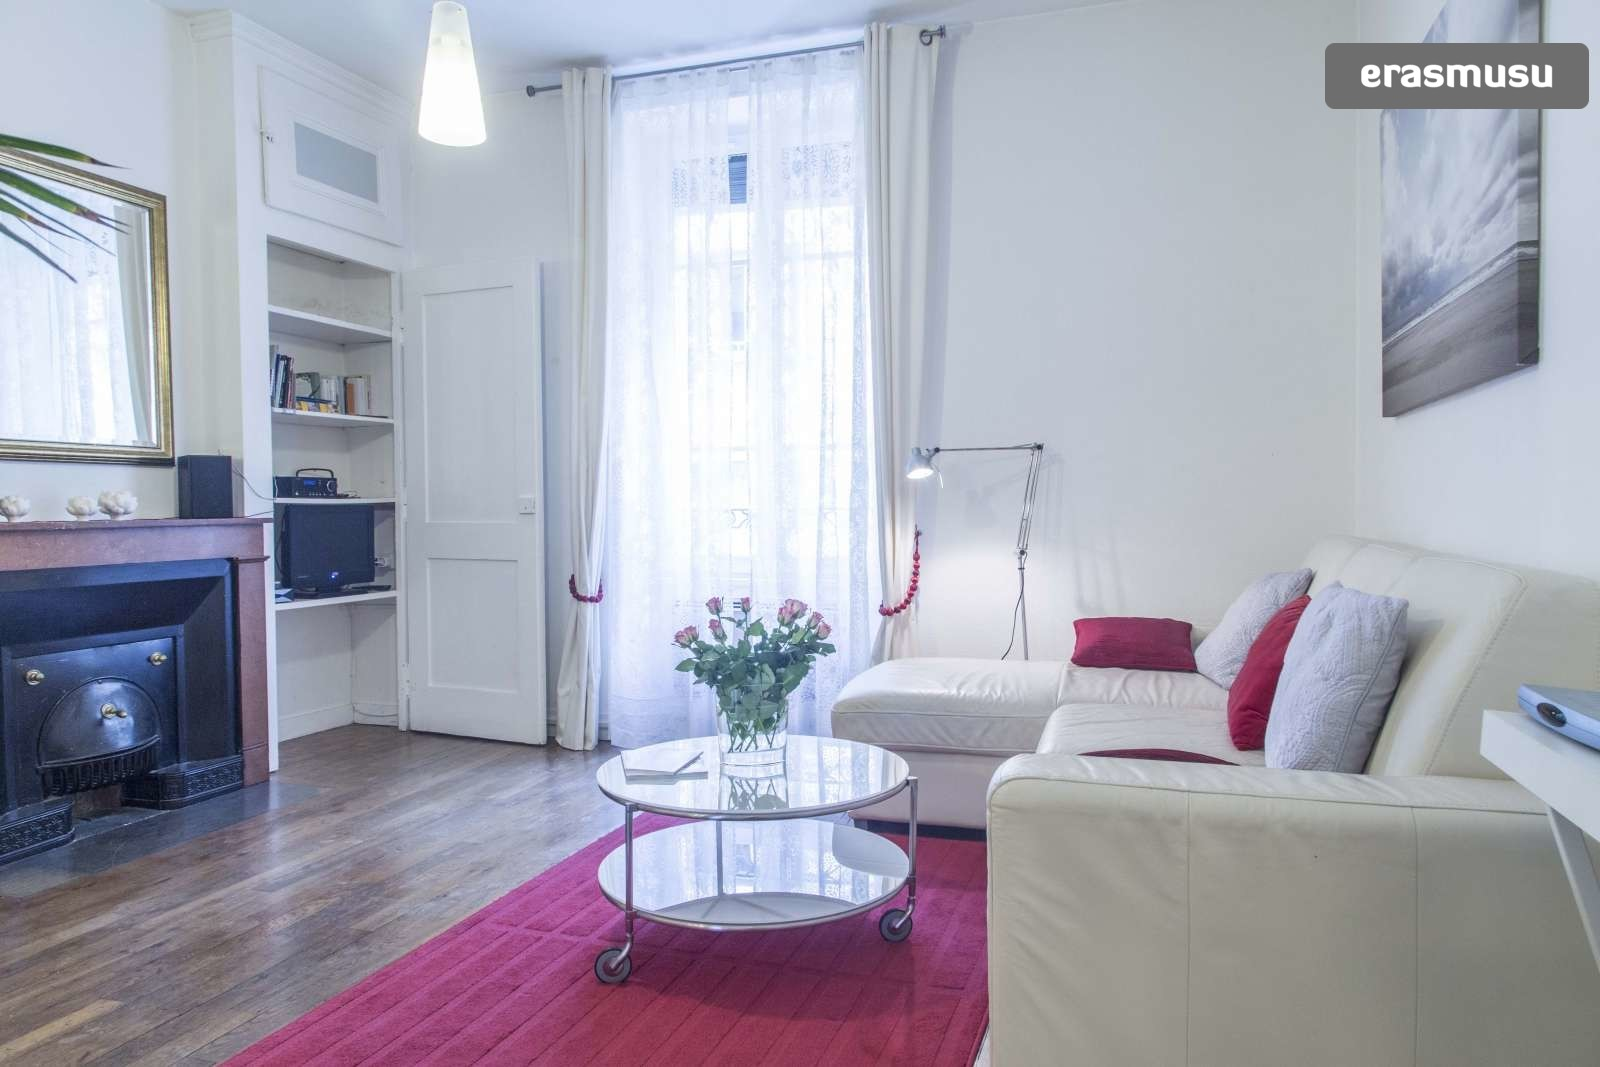 modern-luxurious-studio-apartment-rent-lyon-7b6723470560002bd1c2